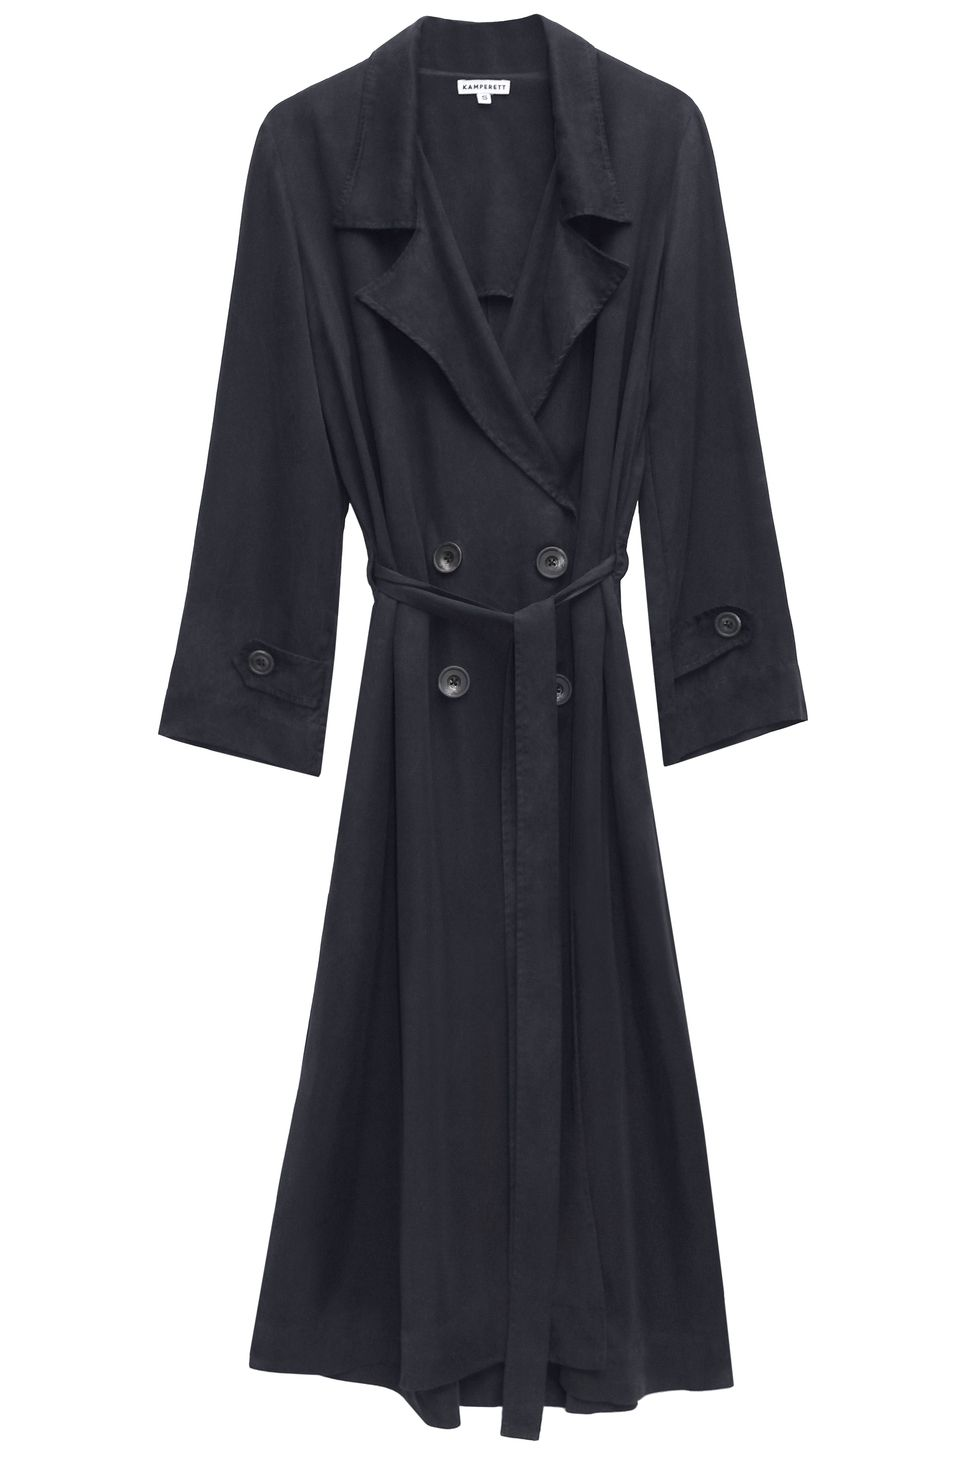 TheLIST: The New Trench Coat